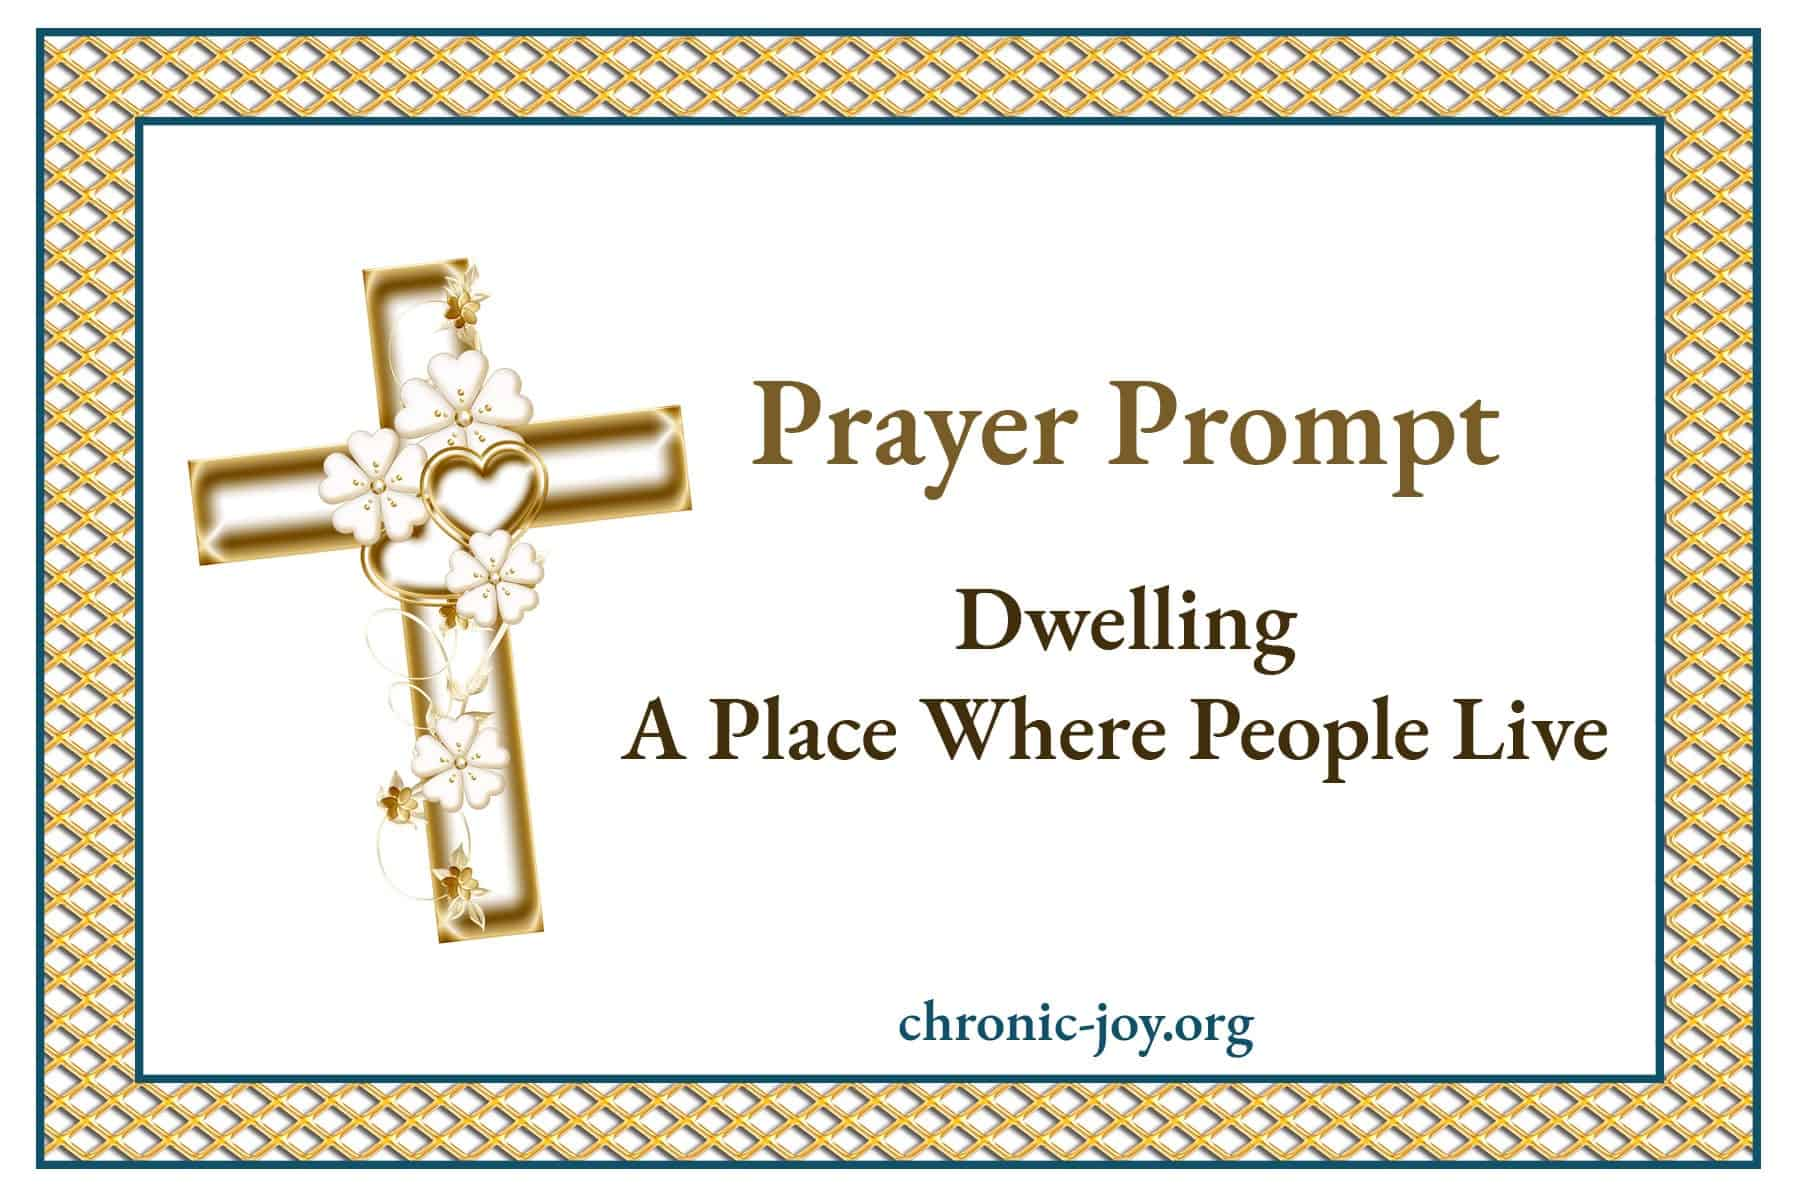 Prayer Prompt • Dwelling: A Place Where People Live